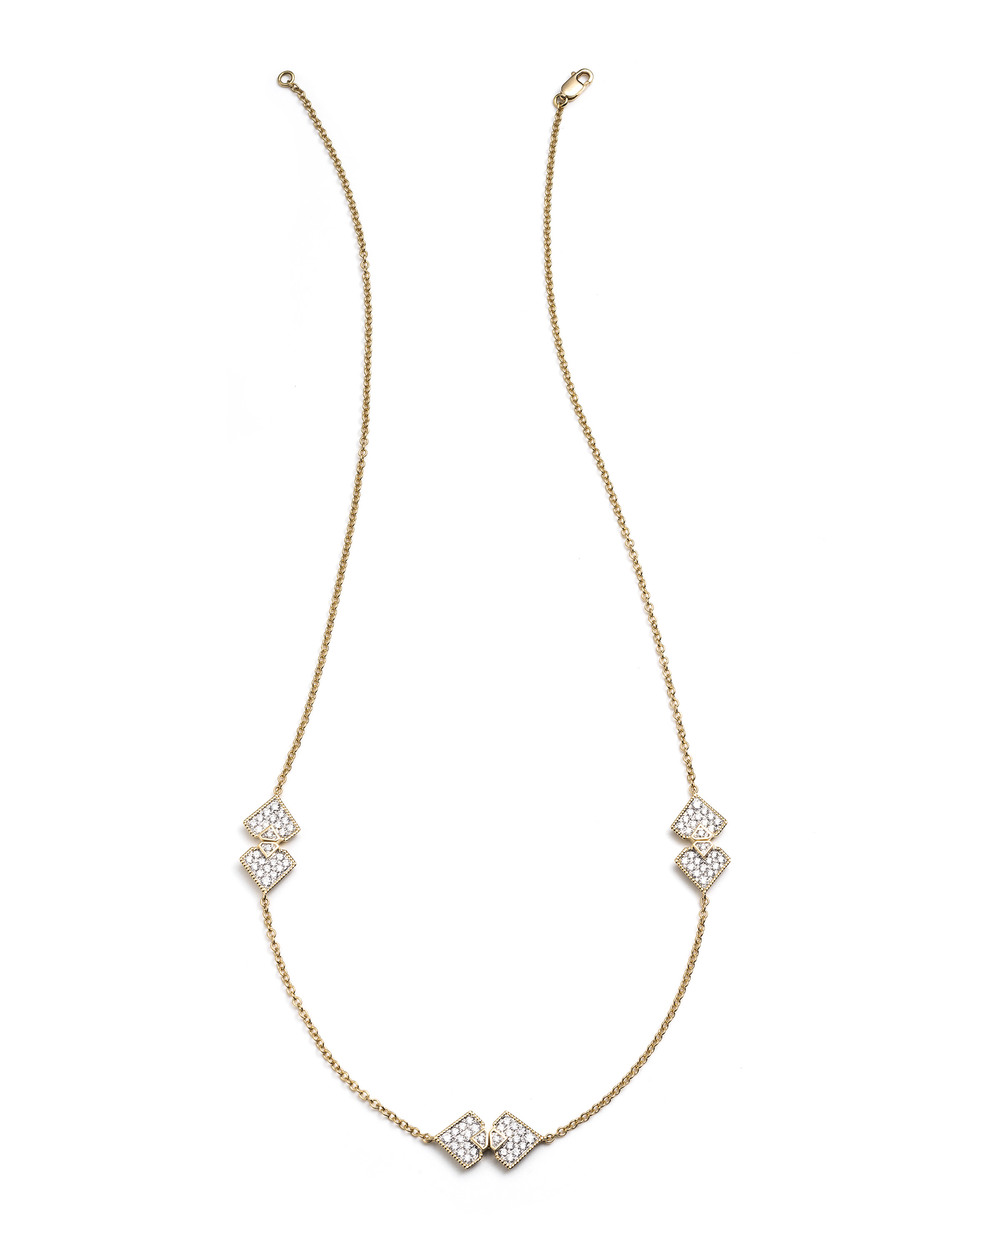 section-necklace-neiman-marcus.jpg